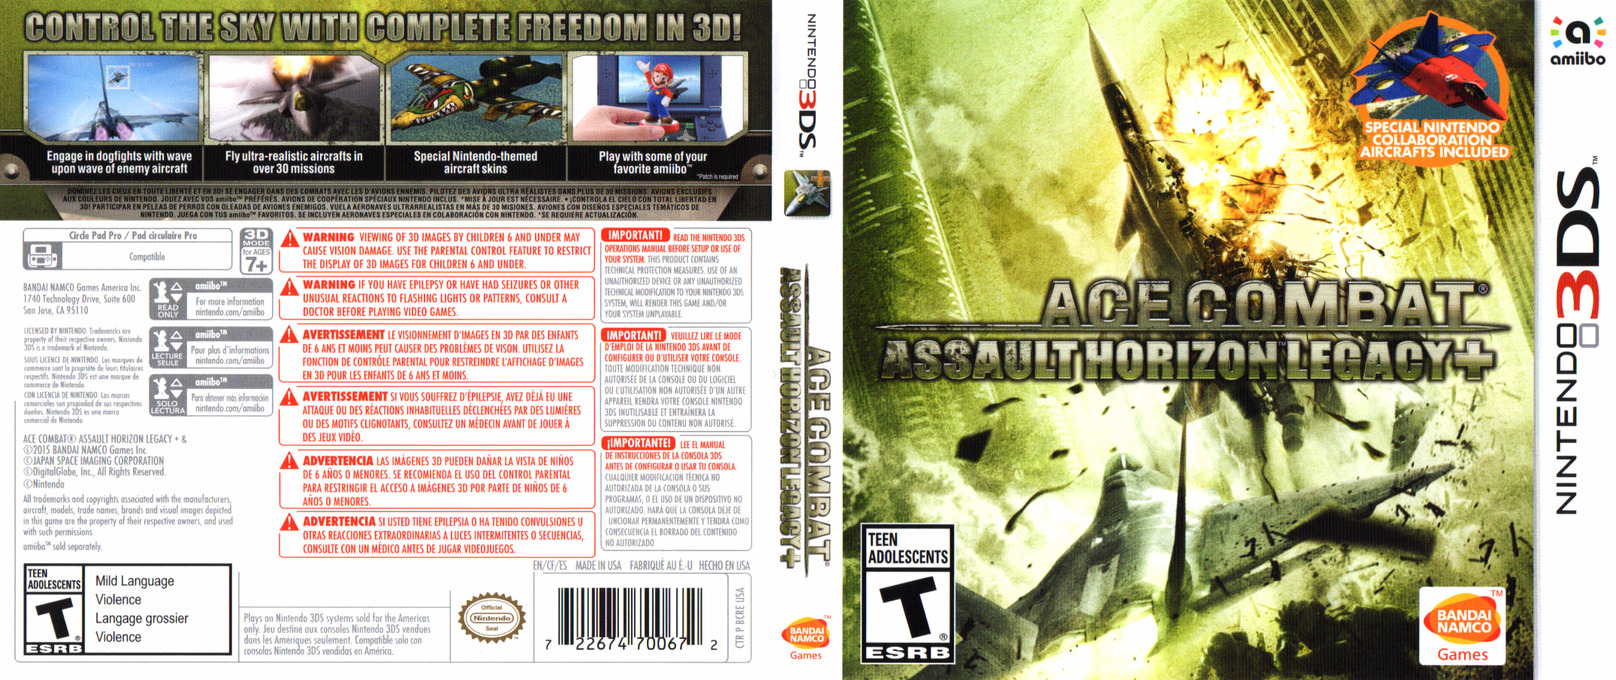 Ace Combat - Assault Horizon Legacy+ 3DS coverfullHQ (BCRE)